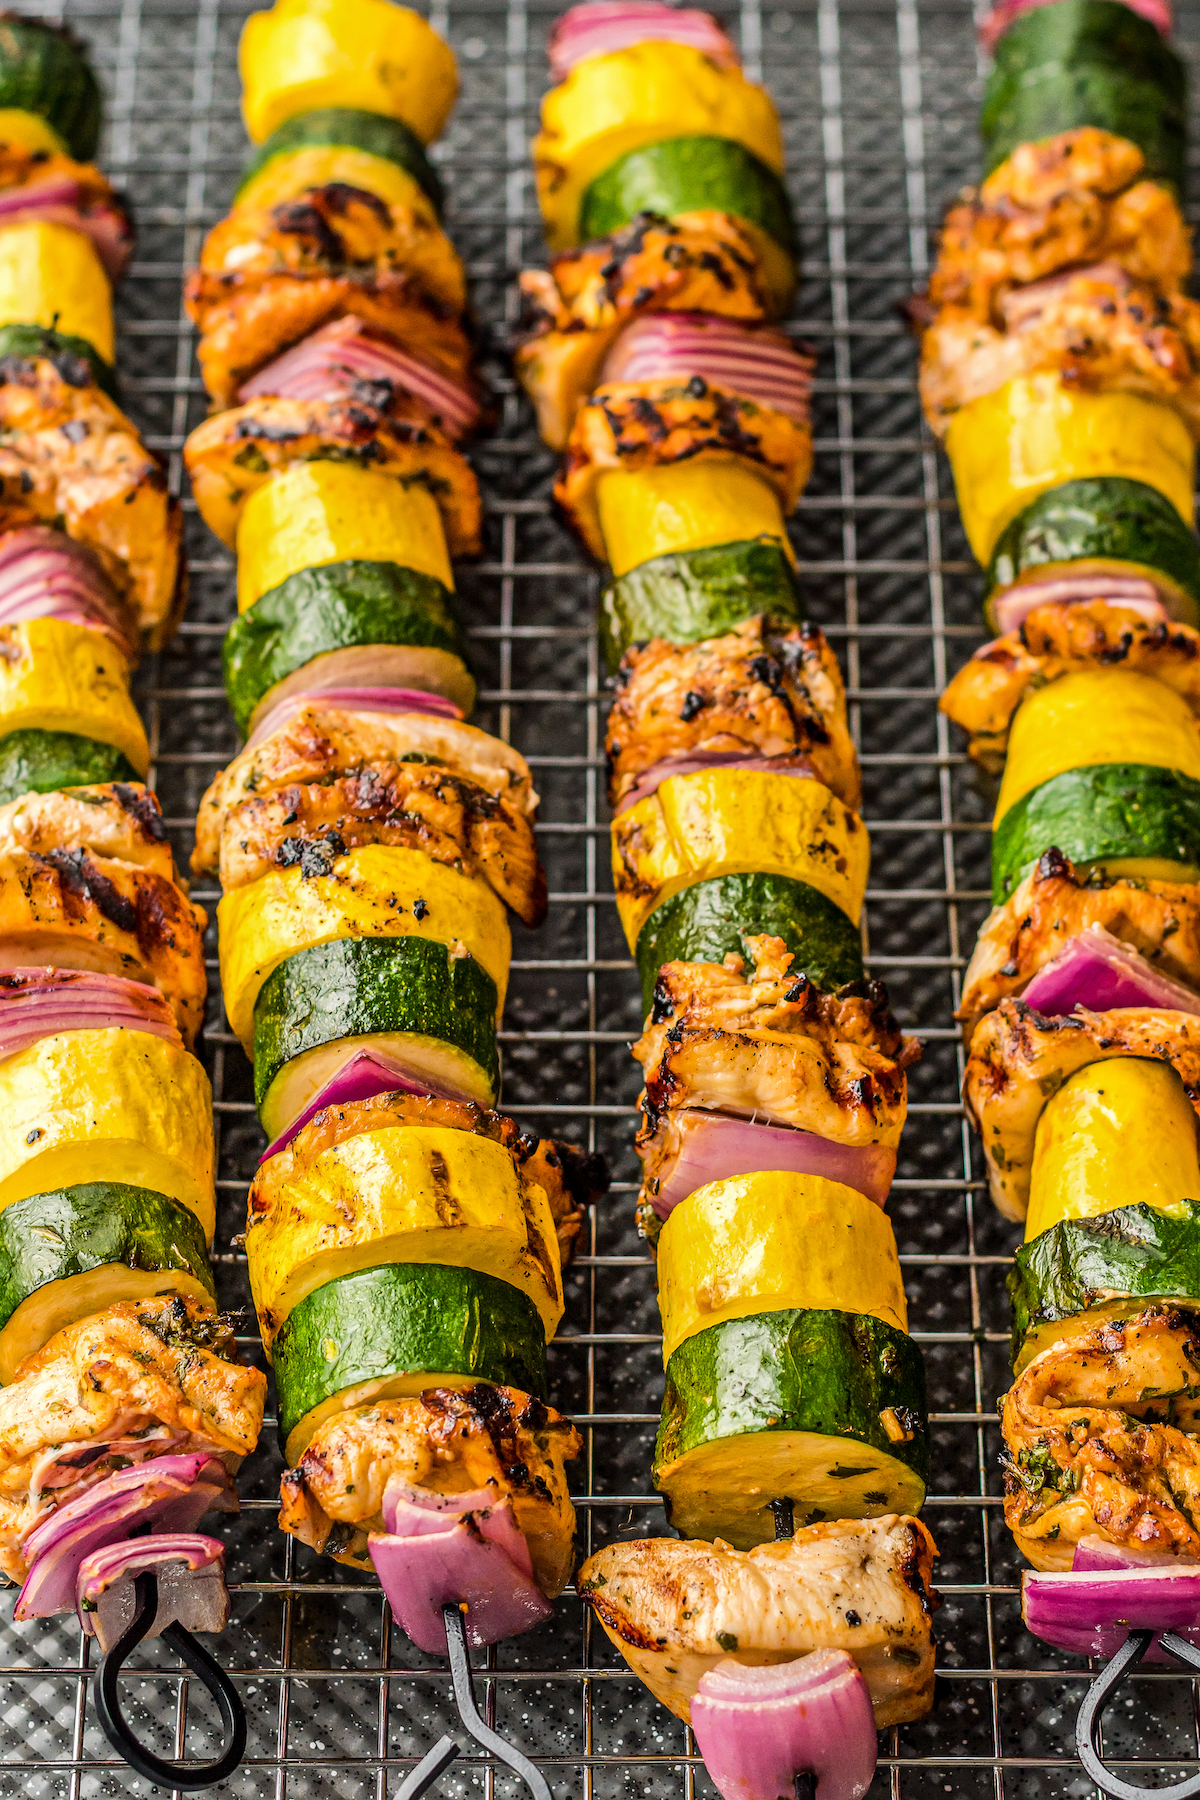 Grilled chicken shish kabobs on a cooling rack.